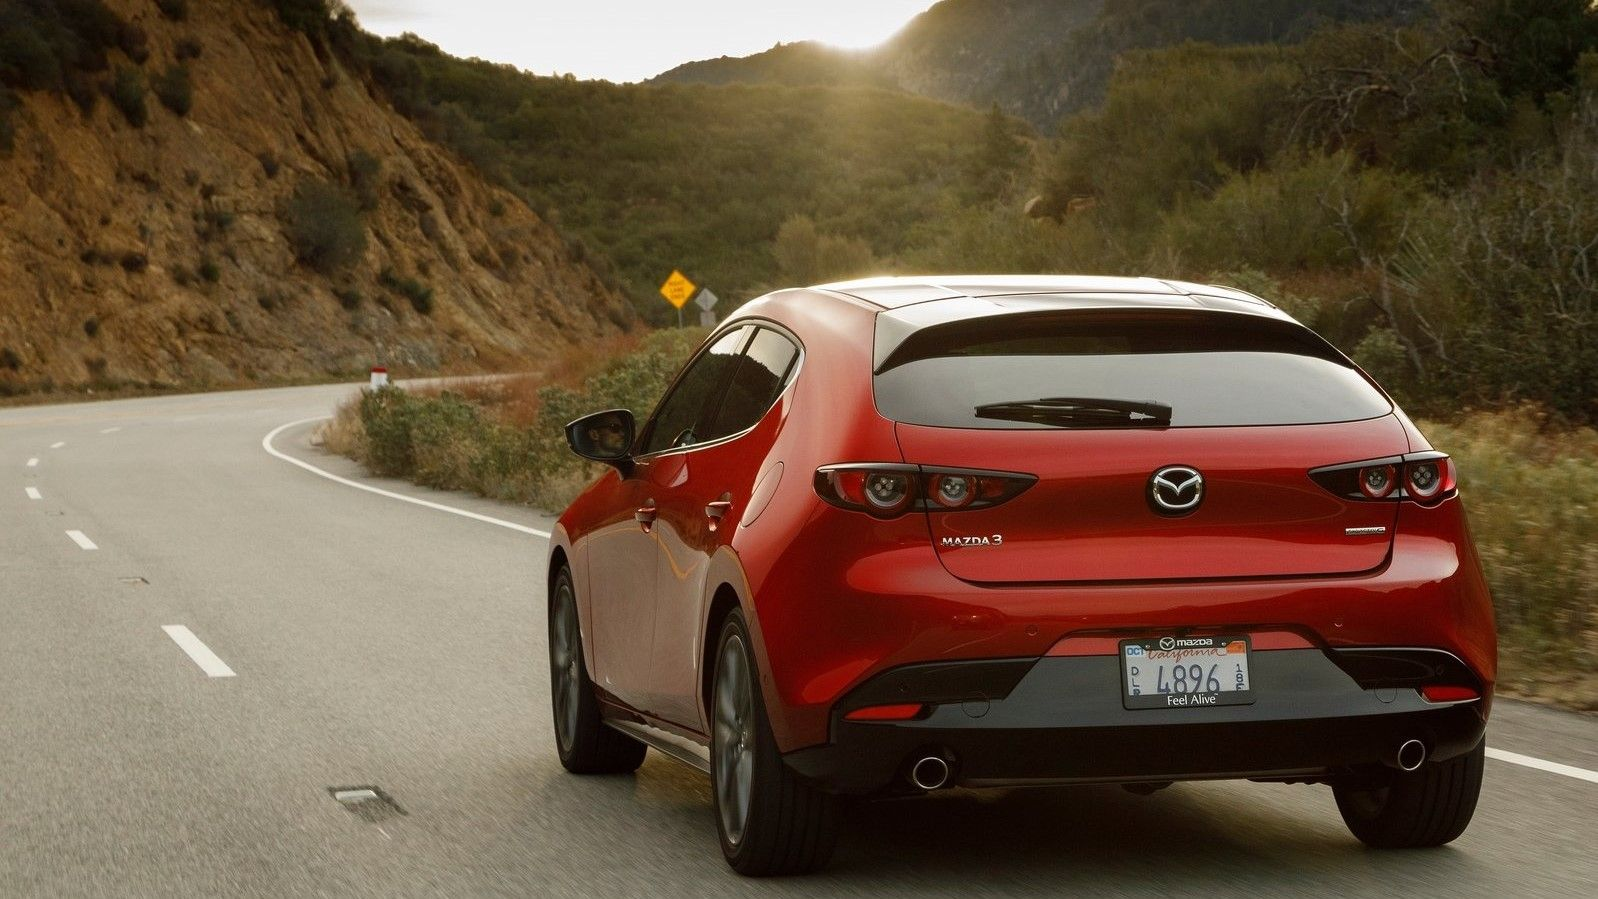 2021 mazda 3 hatchback review: trims, features, prices